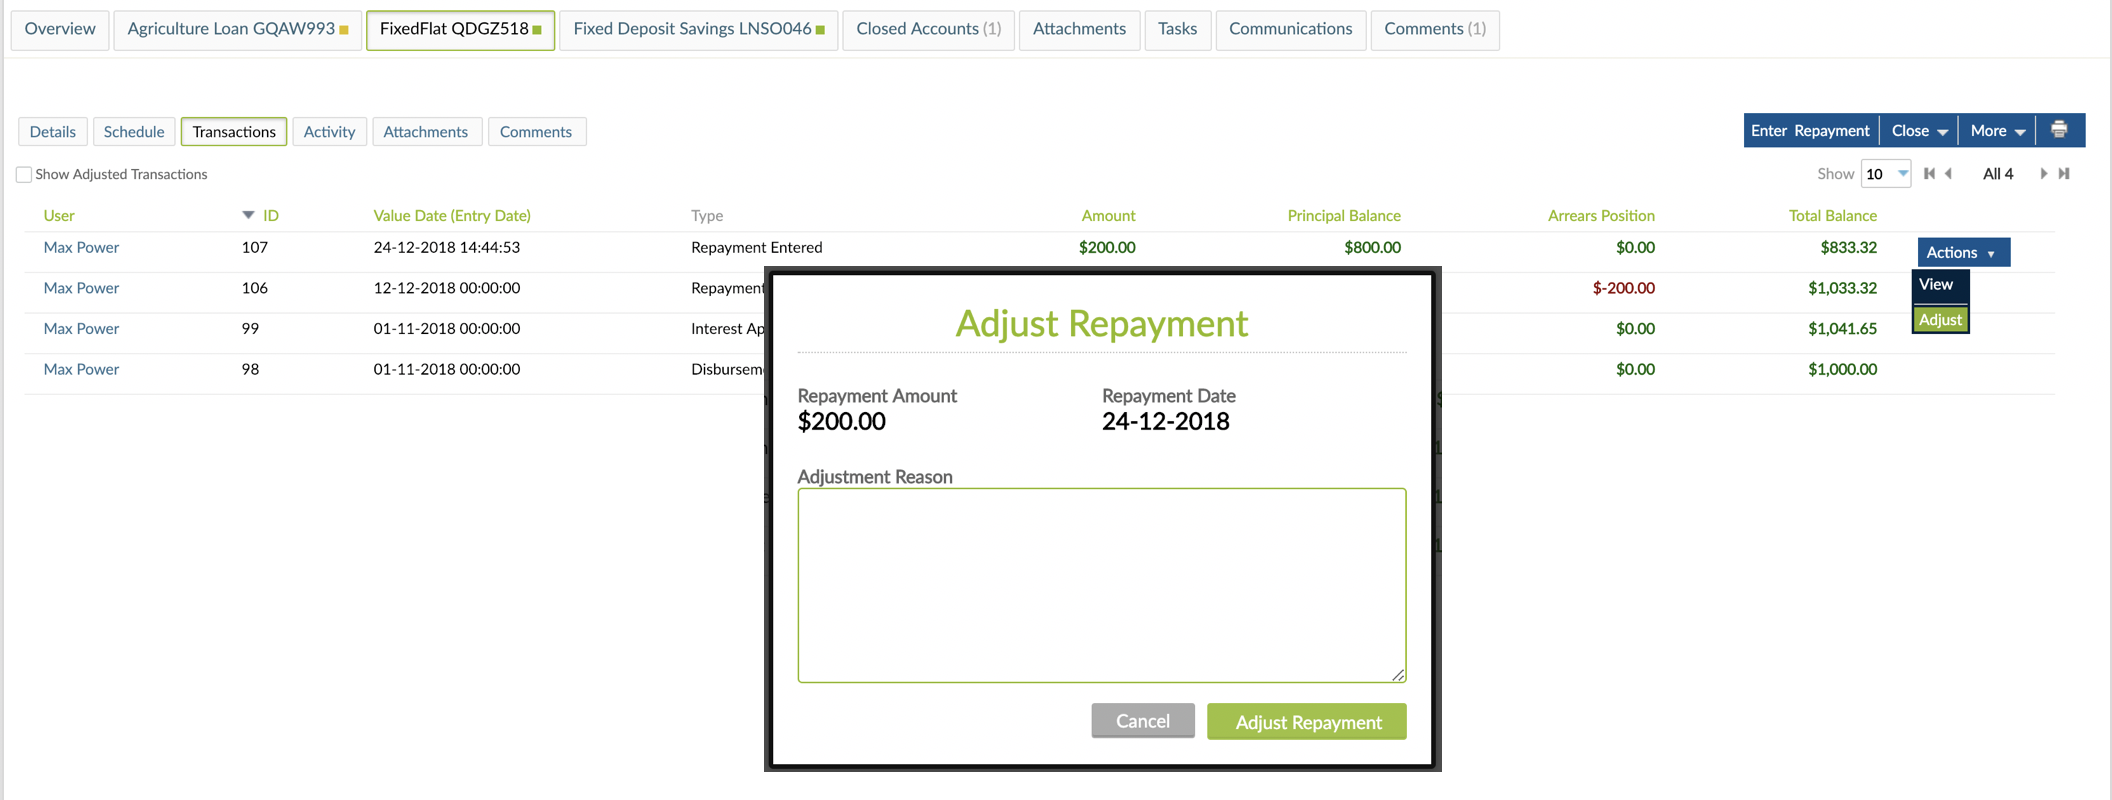 Actions button with Adjust option selected and Ajust Repayment pop-up